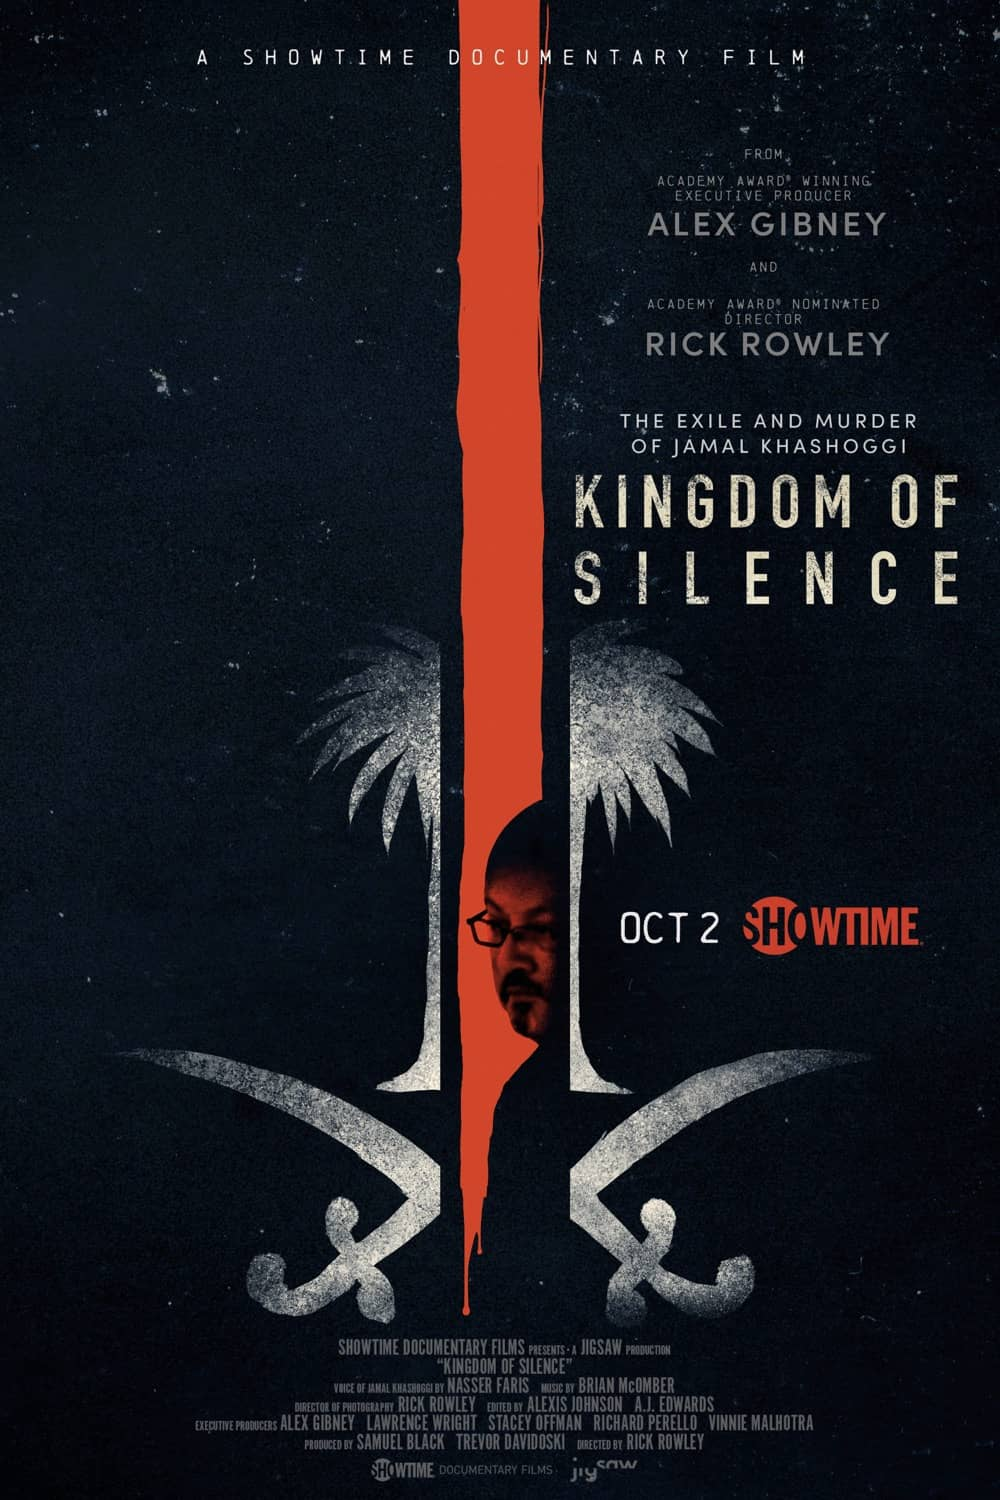 KINGDOM OF SILENCE Poster Key Art